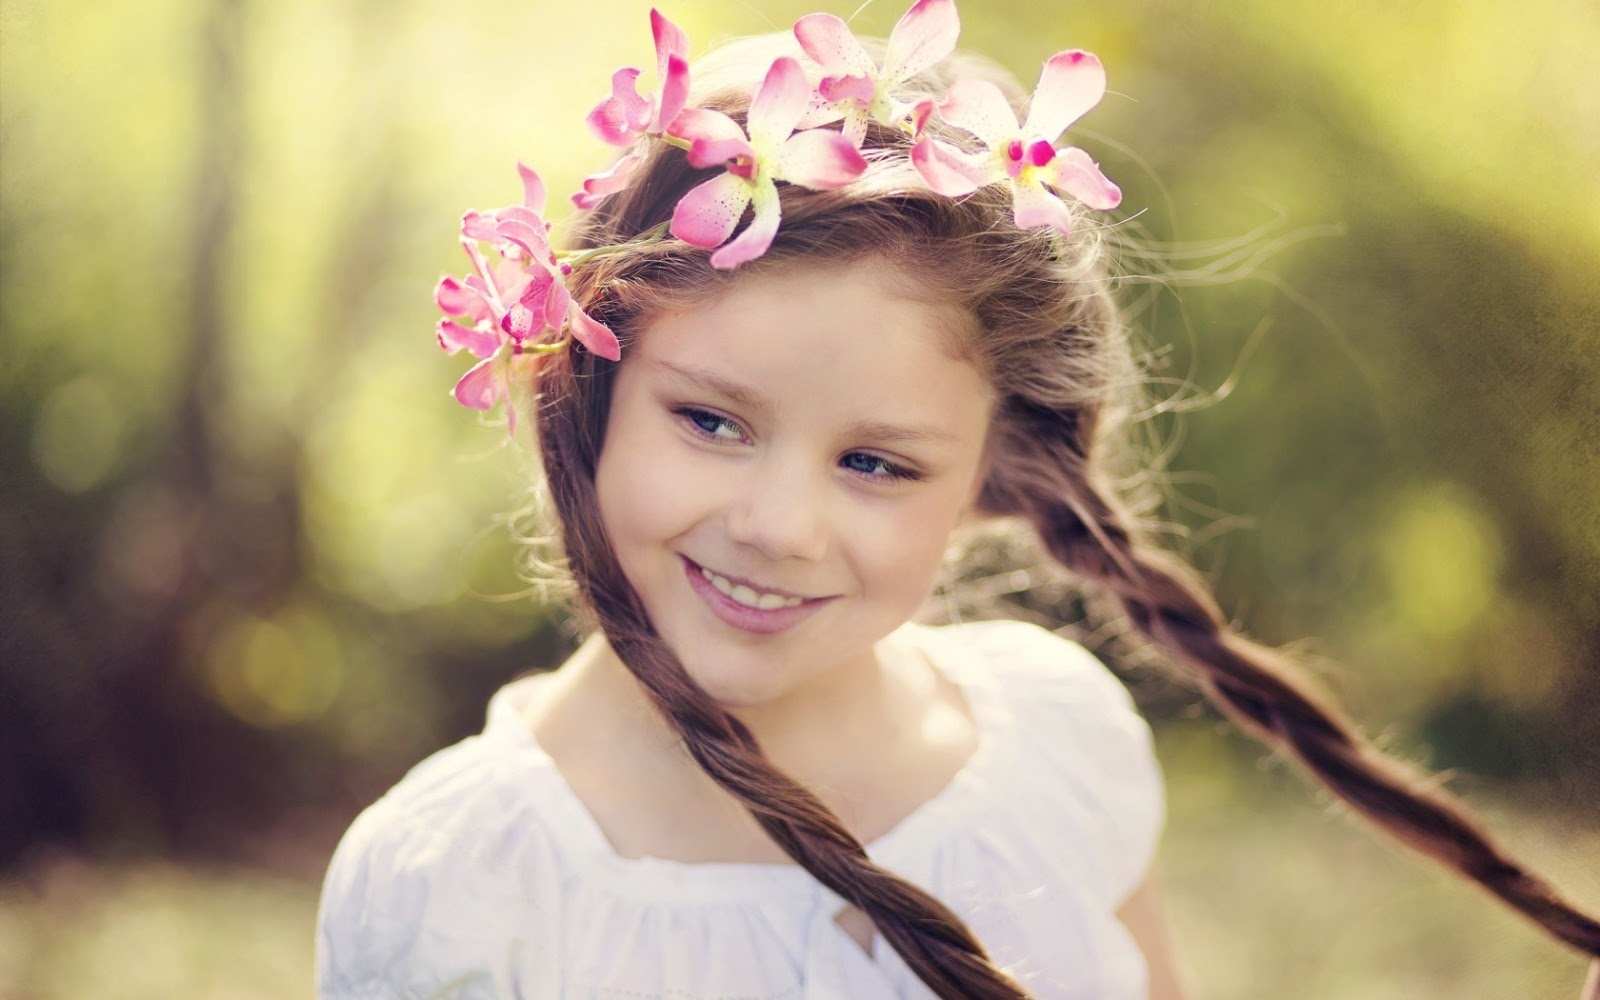 hd wallpaper aa cute little girl wallpaper funonsite 1600x1000